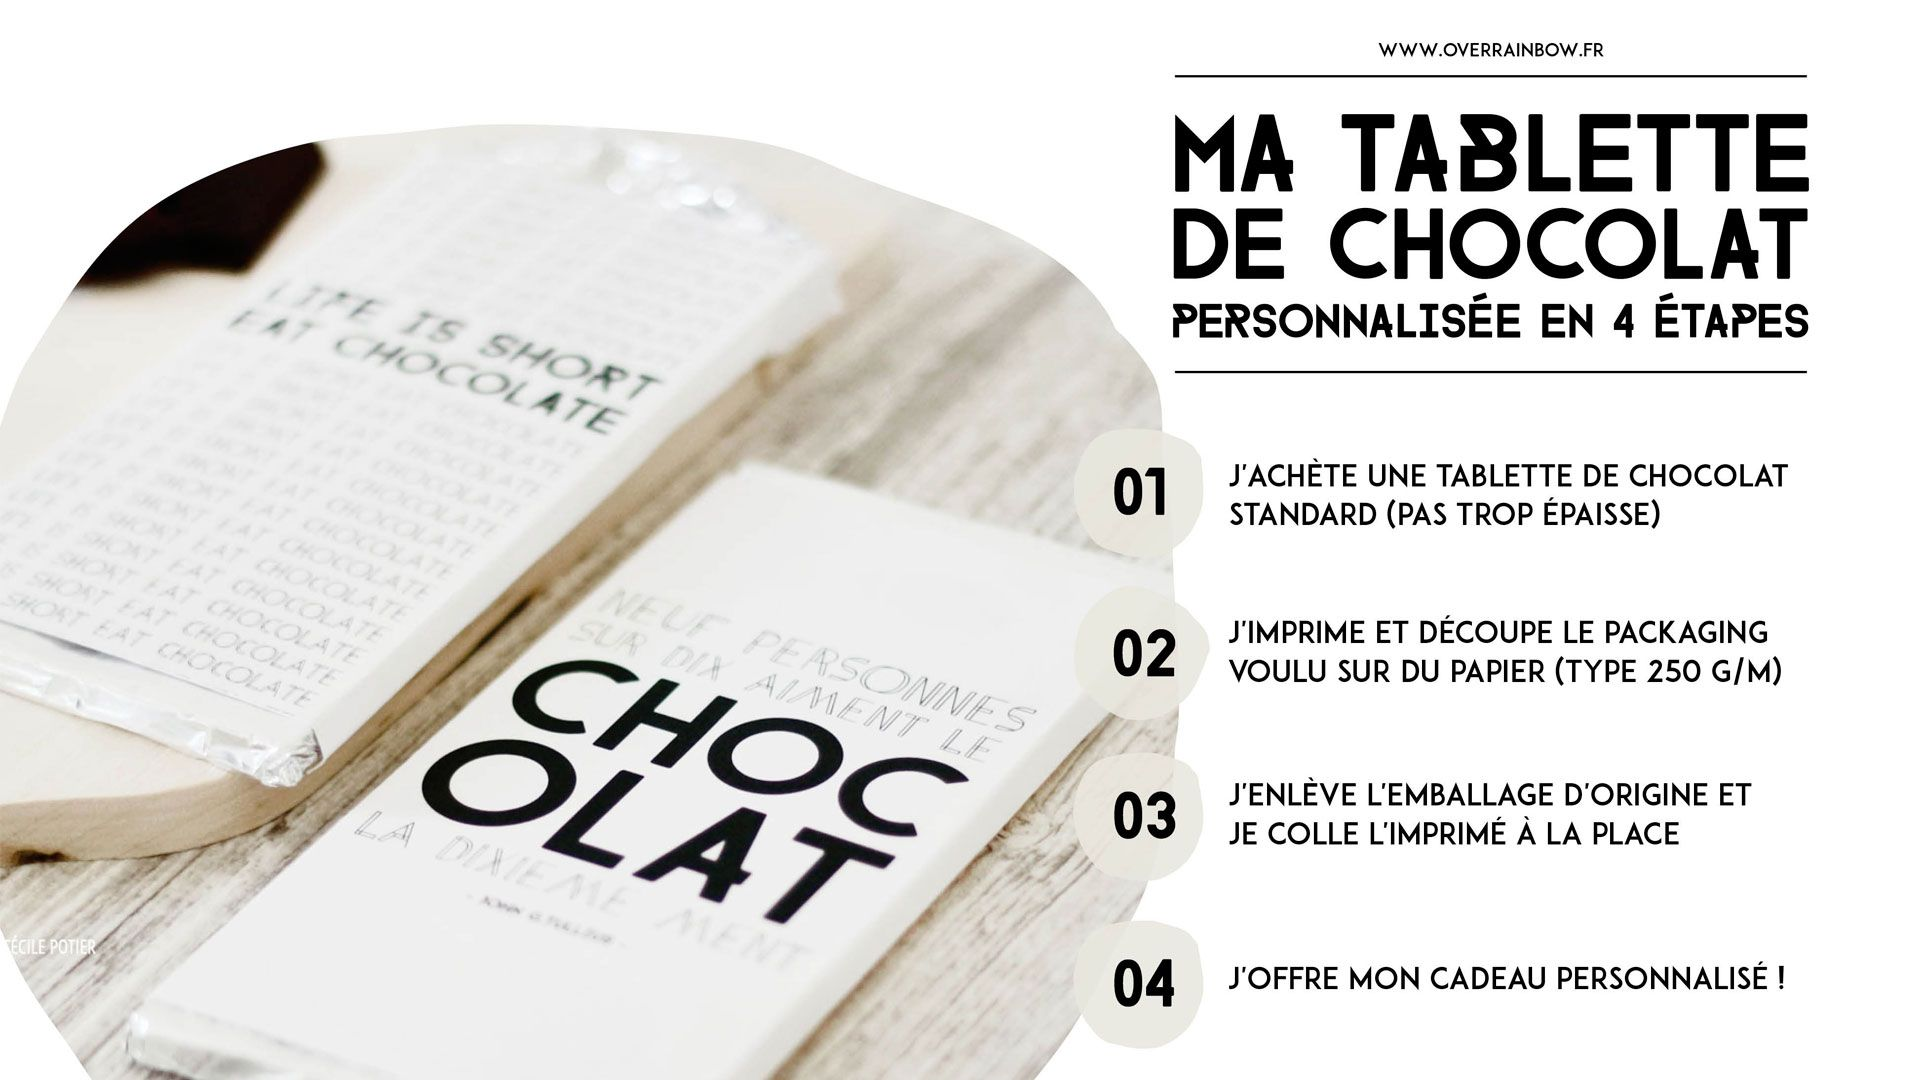 Packaging tablette de chocolat imprimer diy mes freebies pinterest articles and gift - Emballage tablette chocolat a imprimer gratuit ...